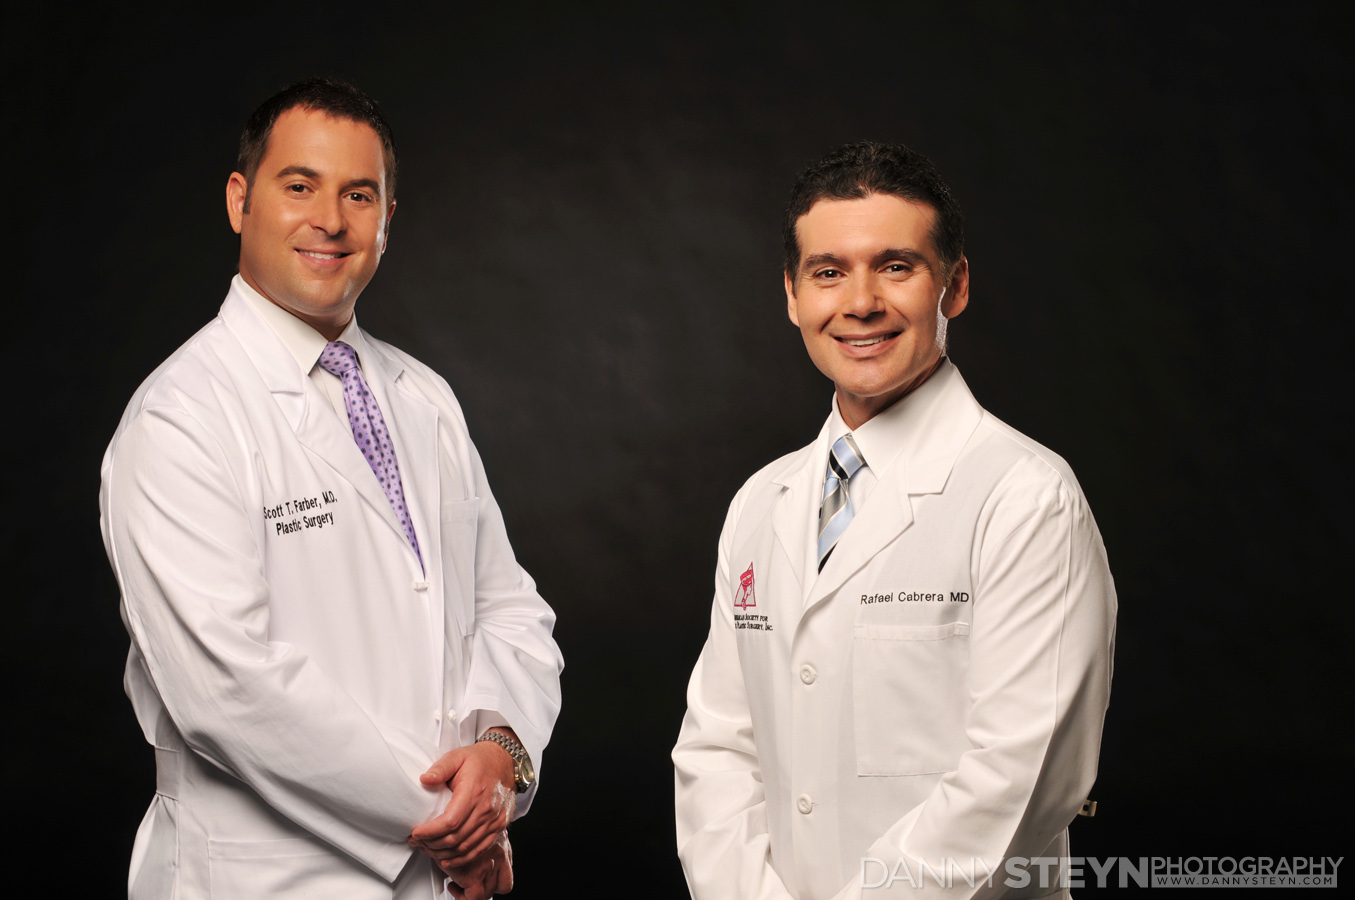 medical photography fort lauderdale